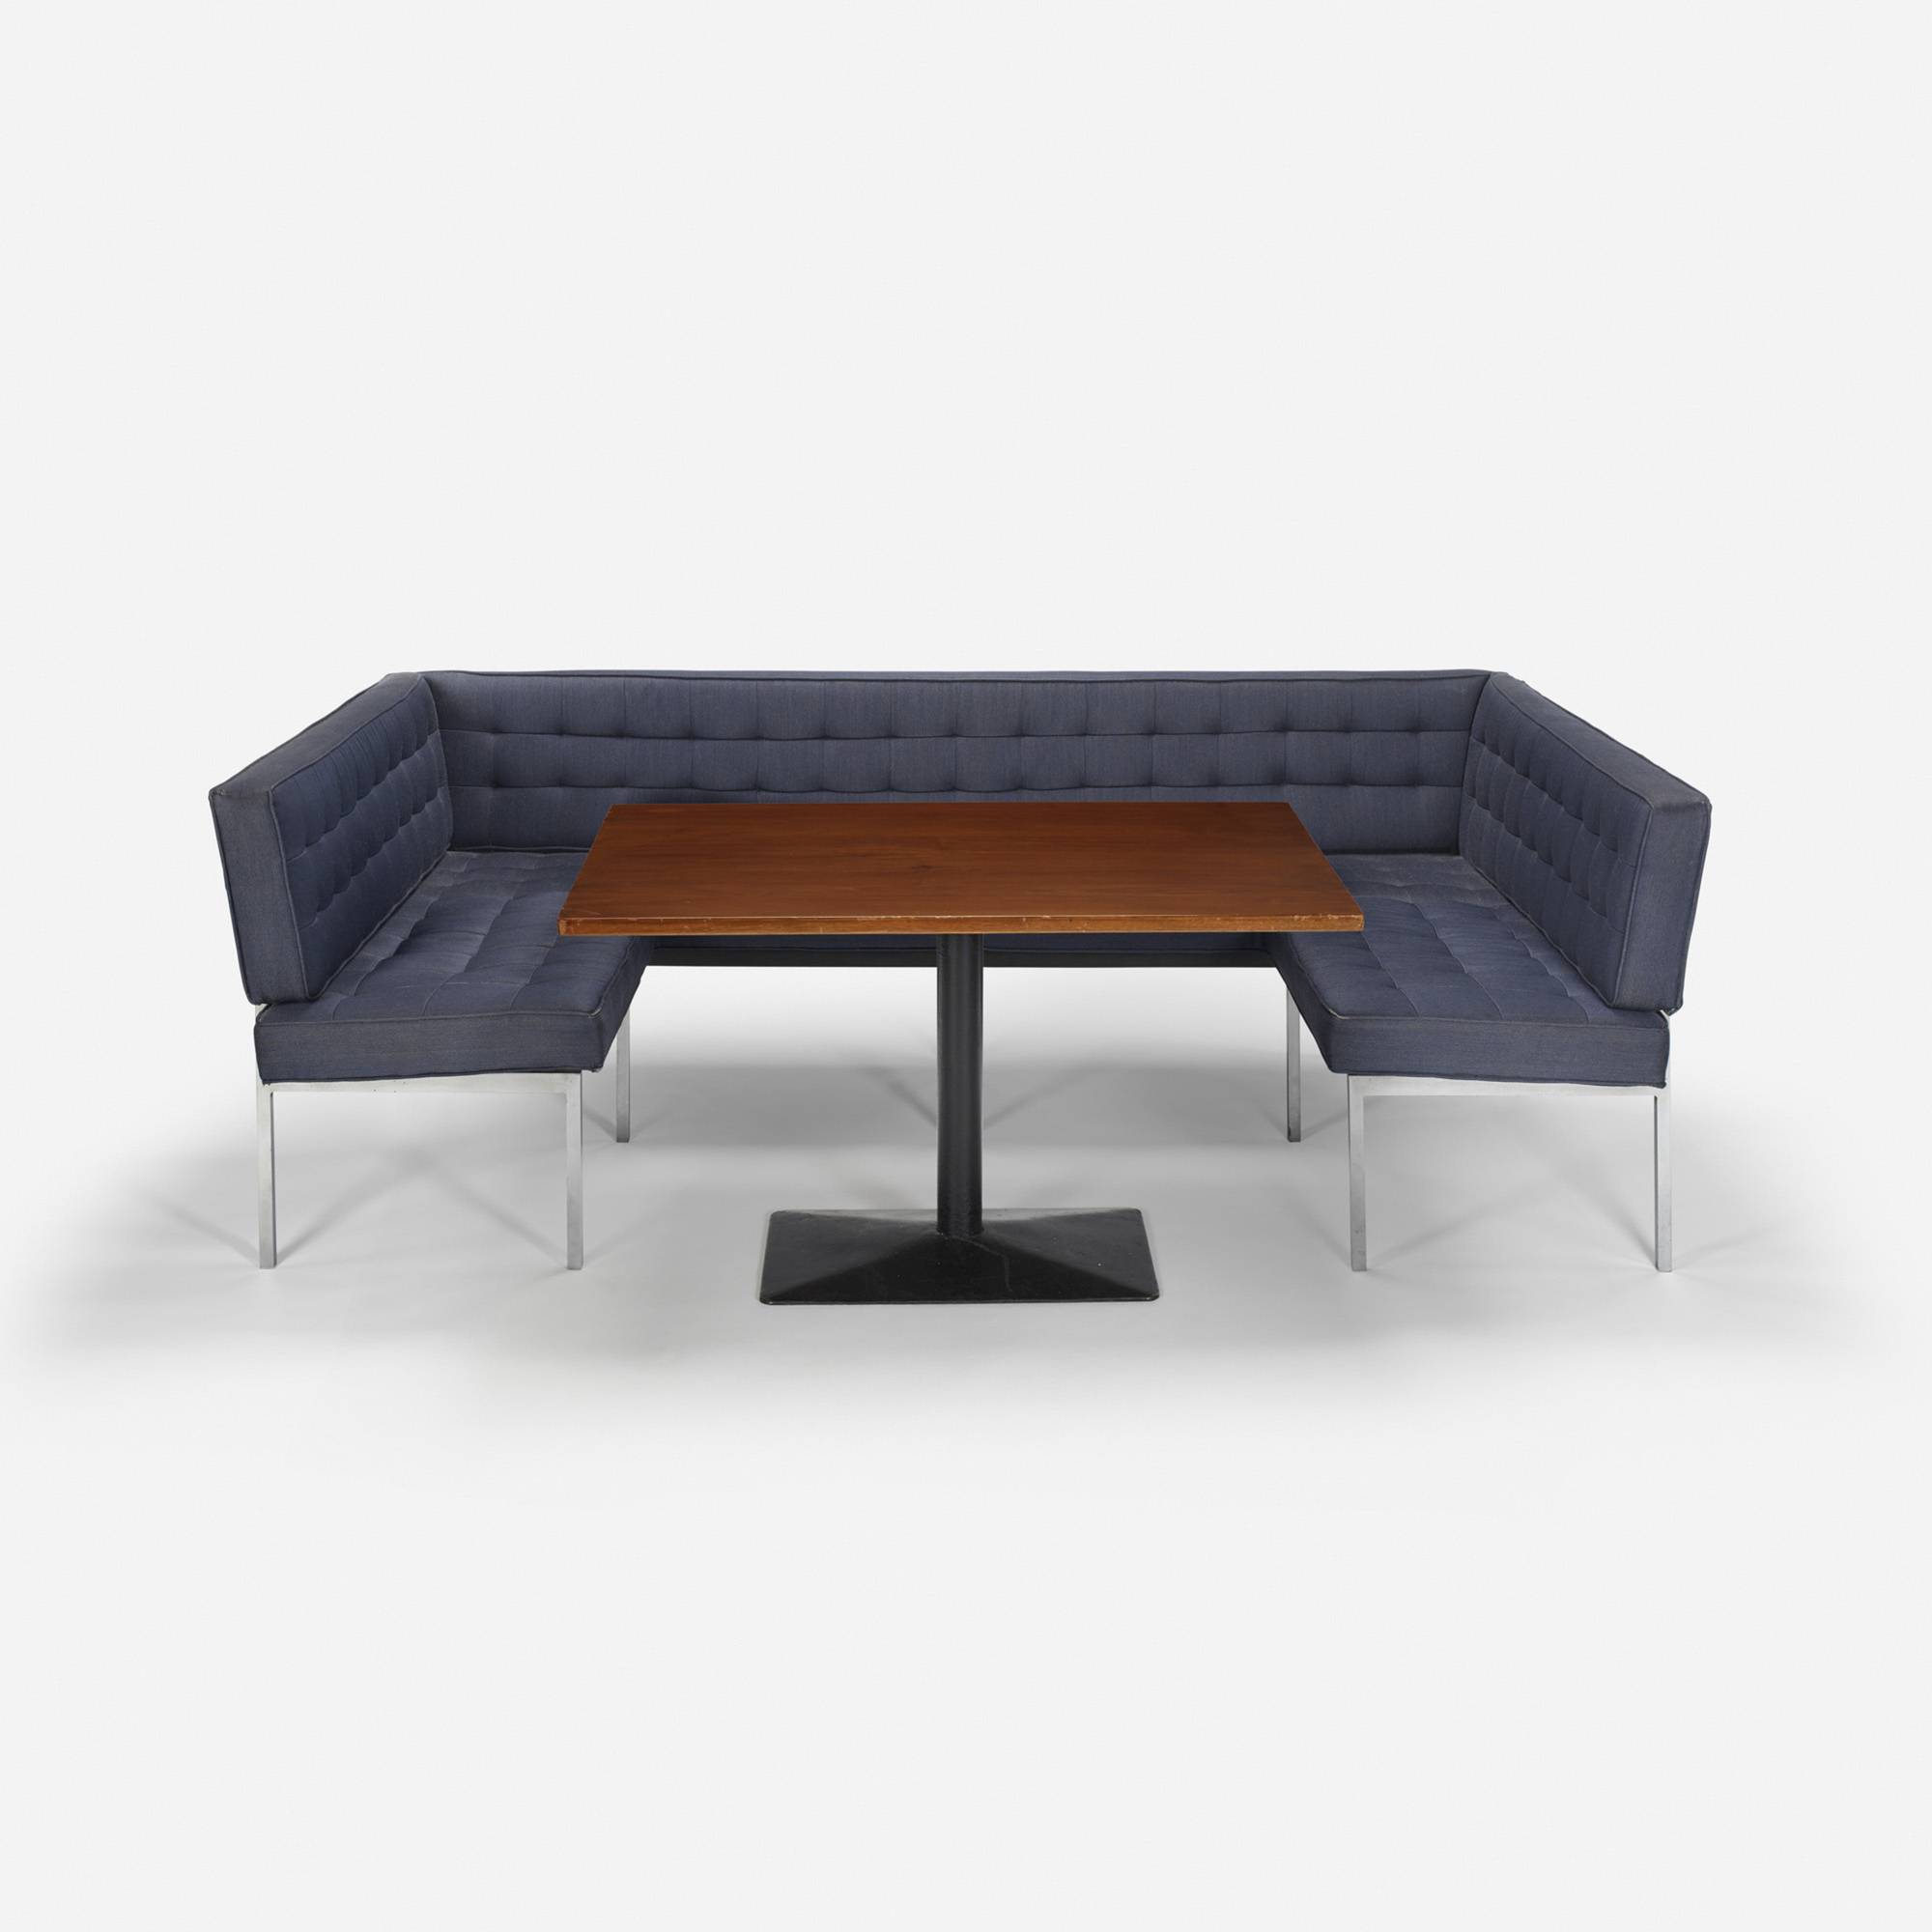 220: Philip Johnson Associates / Three-sided banquette and table 32 from the Grill Room (1 of 1)